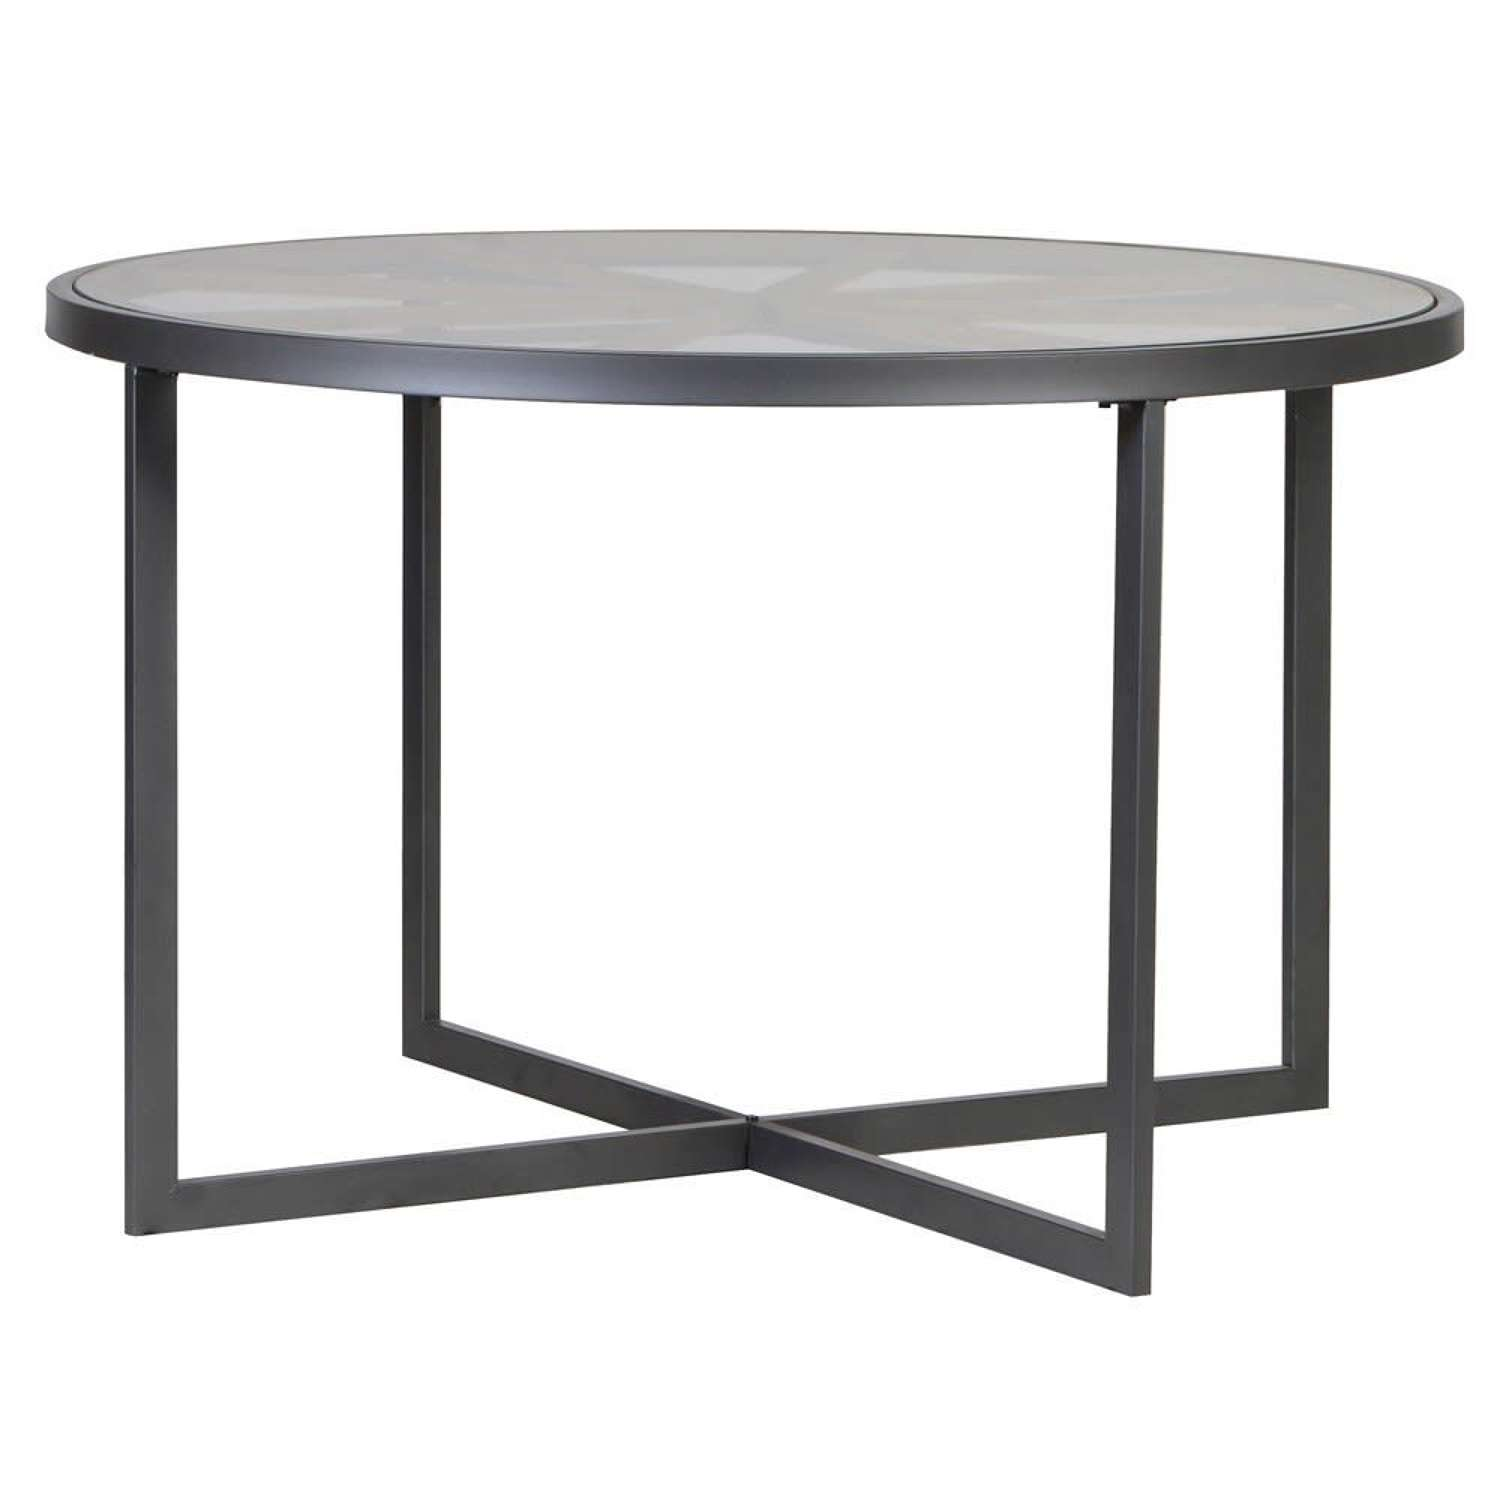 Round Dining Table with Glass Top and Spoke Design